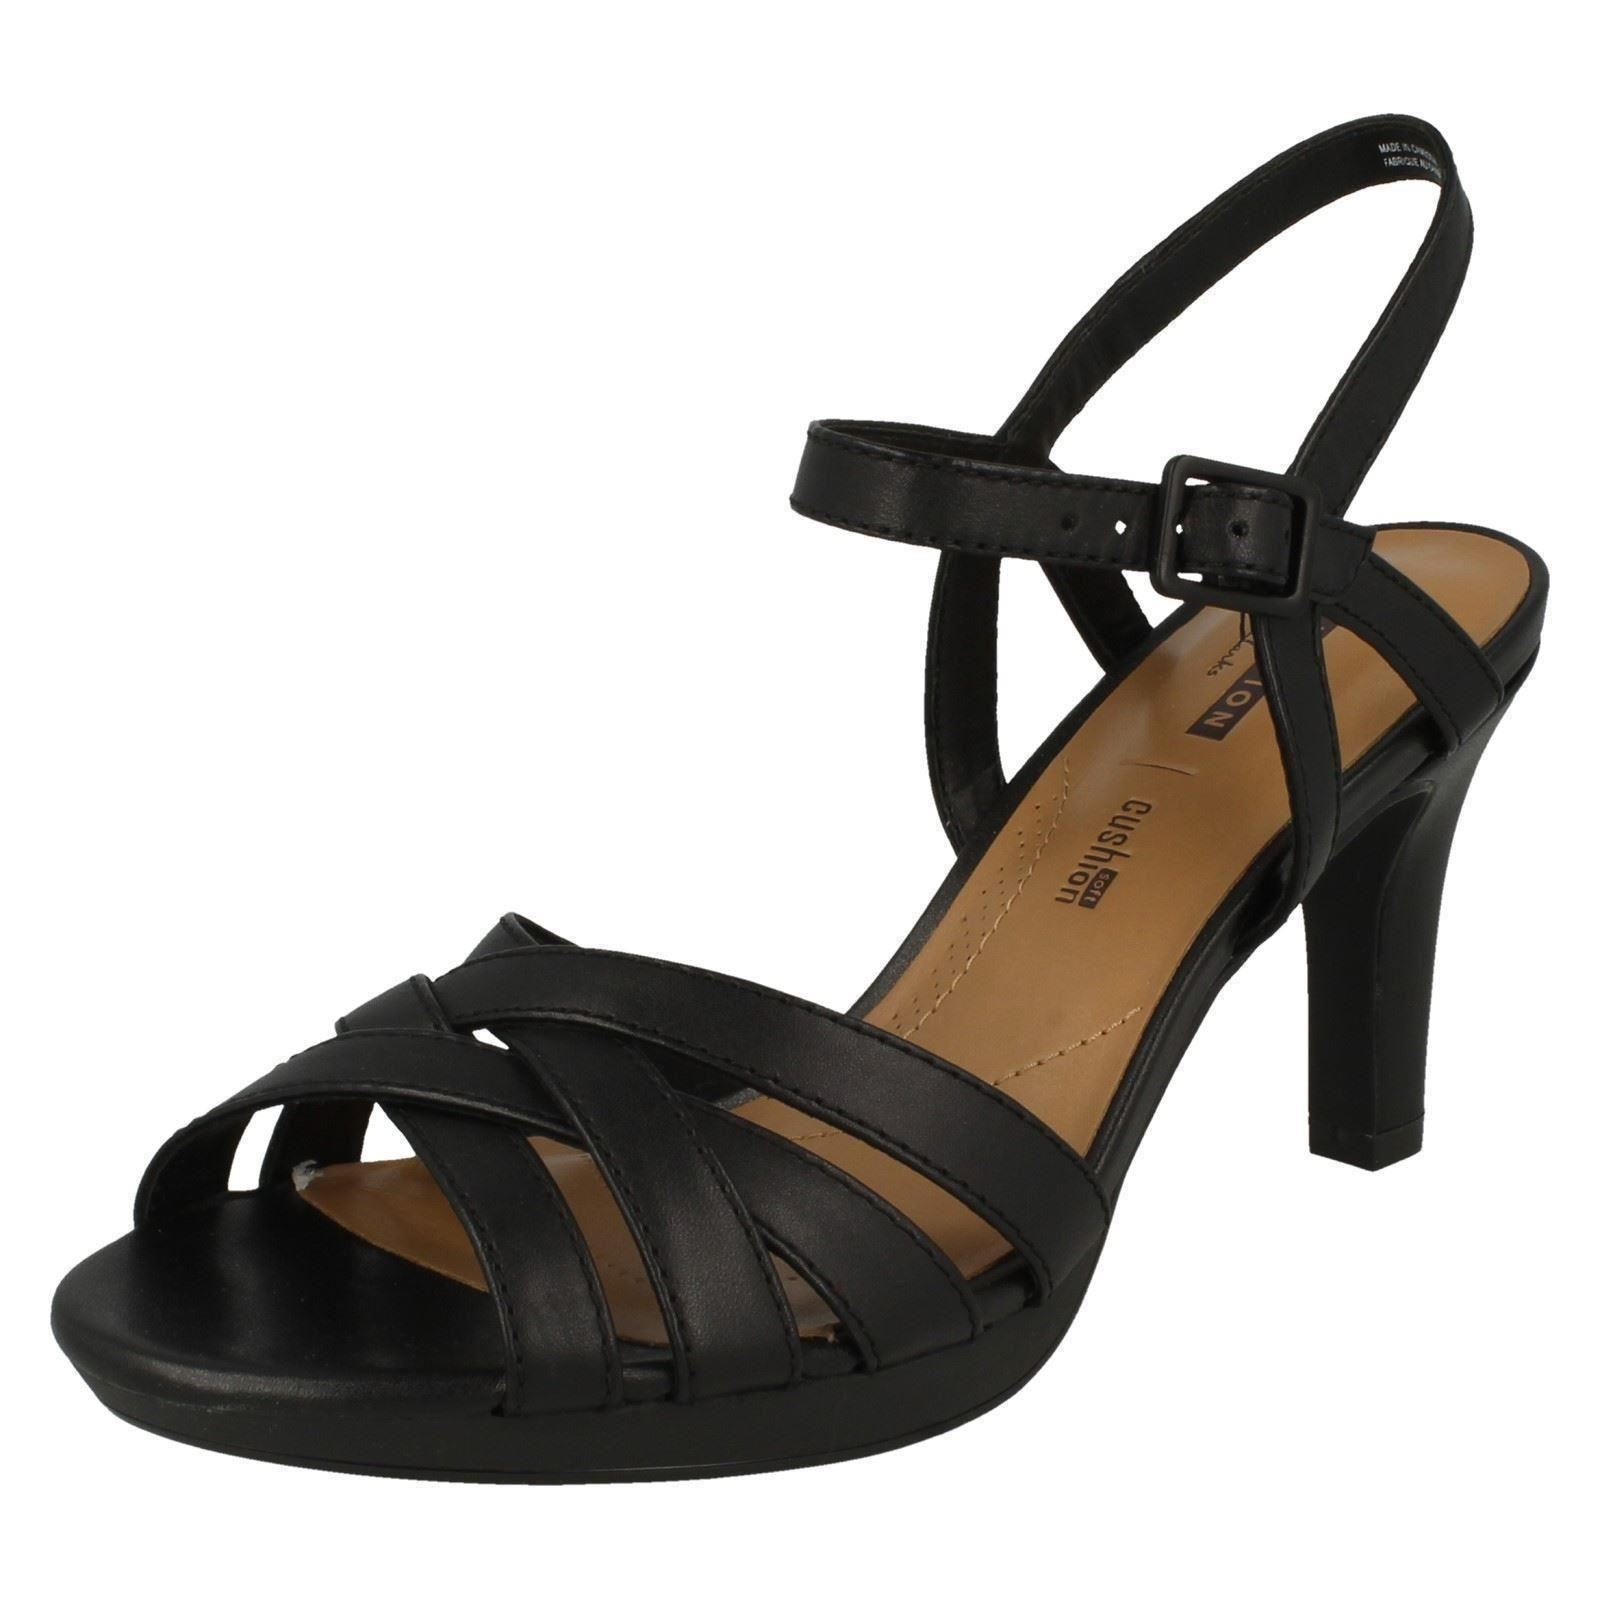 444c0e51b60 Women s Clarks Adriel Wavy Strap Sandals in Black UK 4   EU 37. About this  product. Picture 1 of 7  Picture 2 of 7 ...